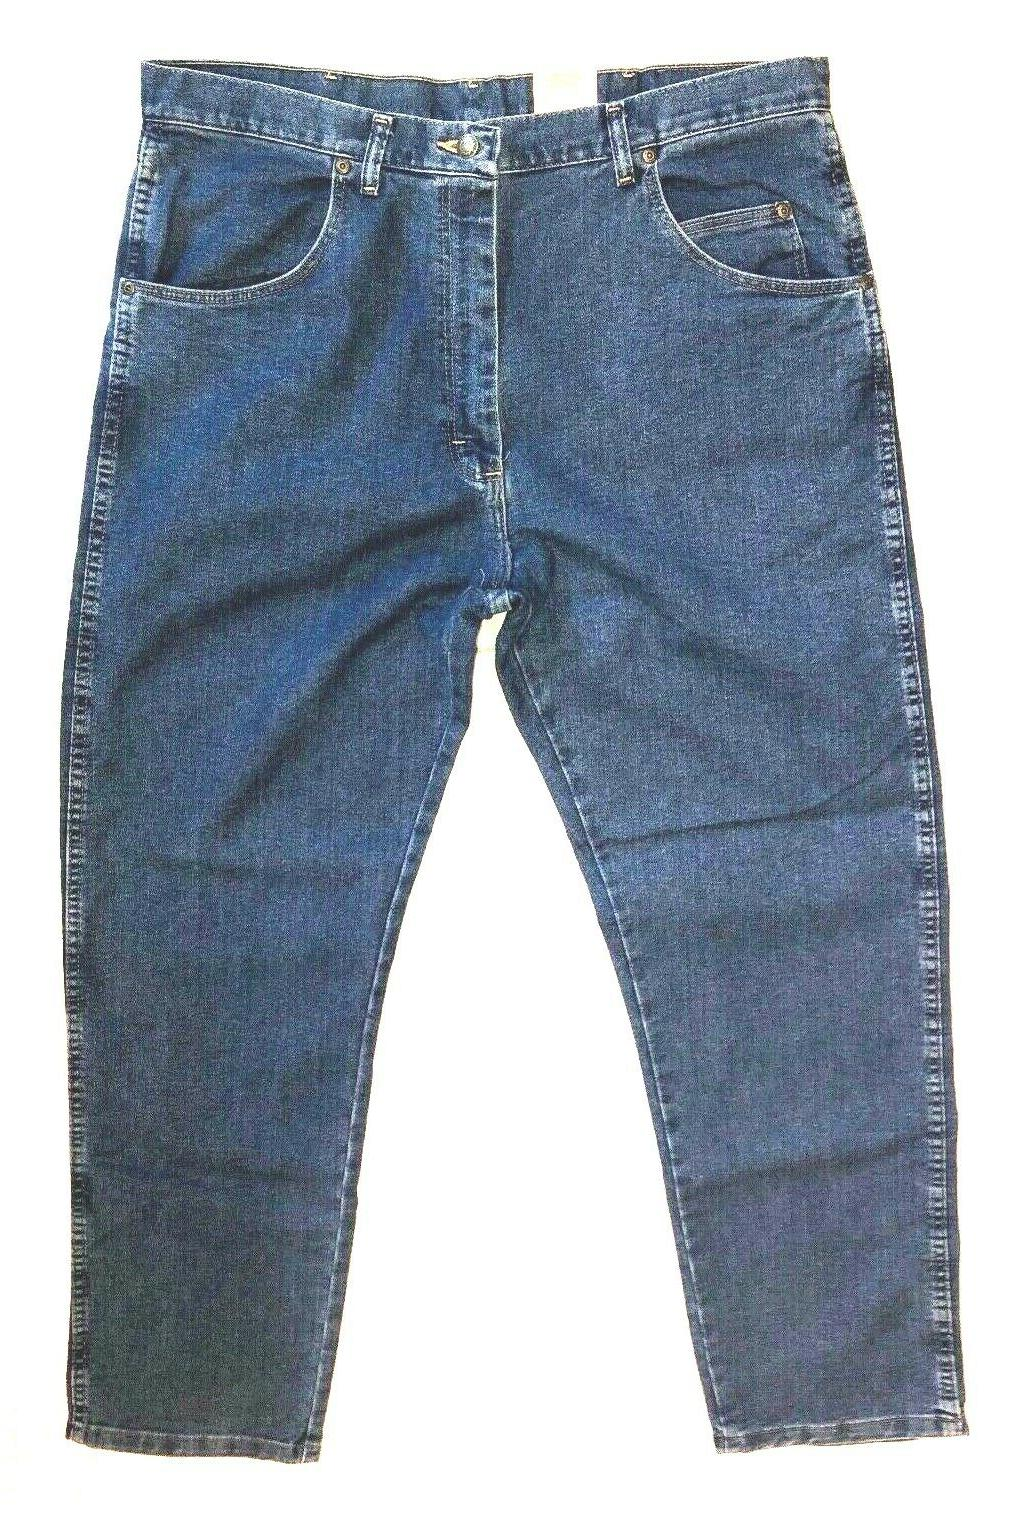 Wrangler Relaxed Stretch Size 38 New with